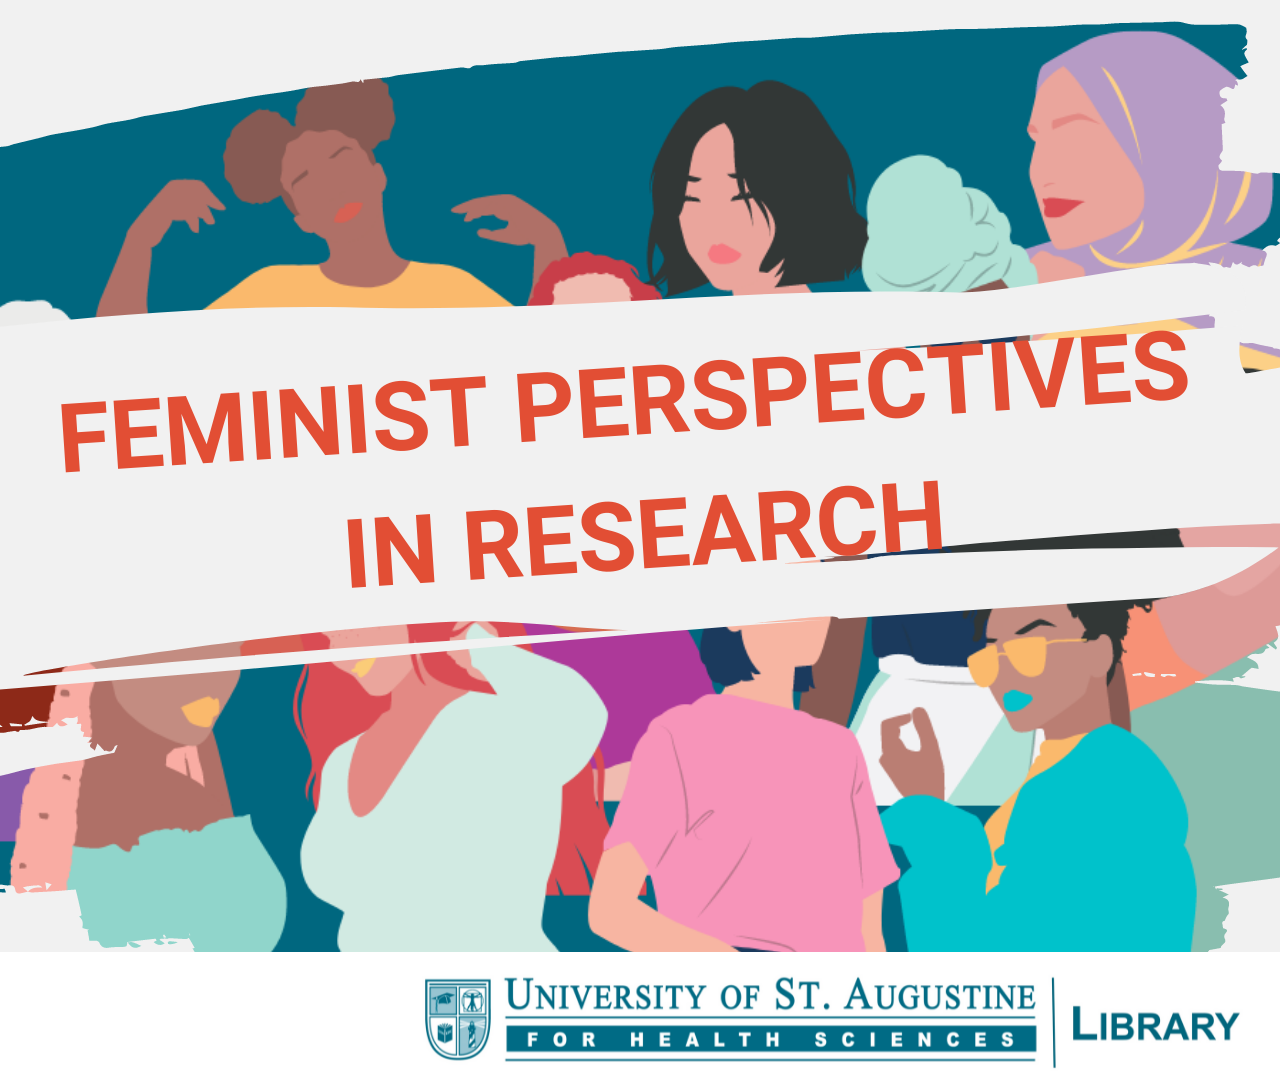 Feminist Perspectives in Research